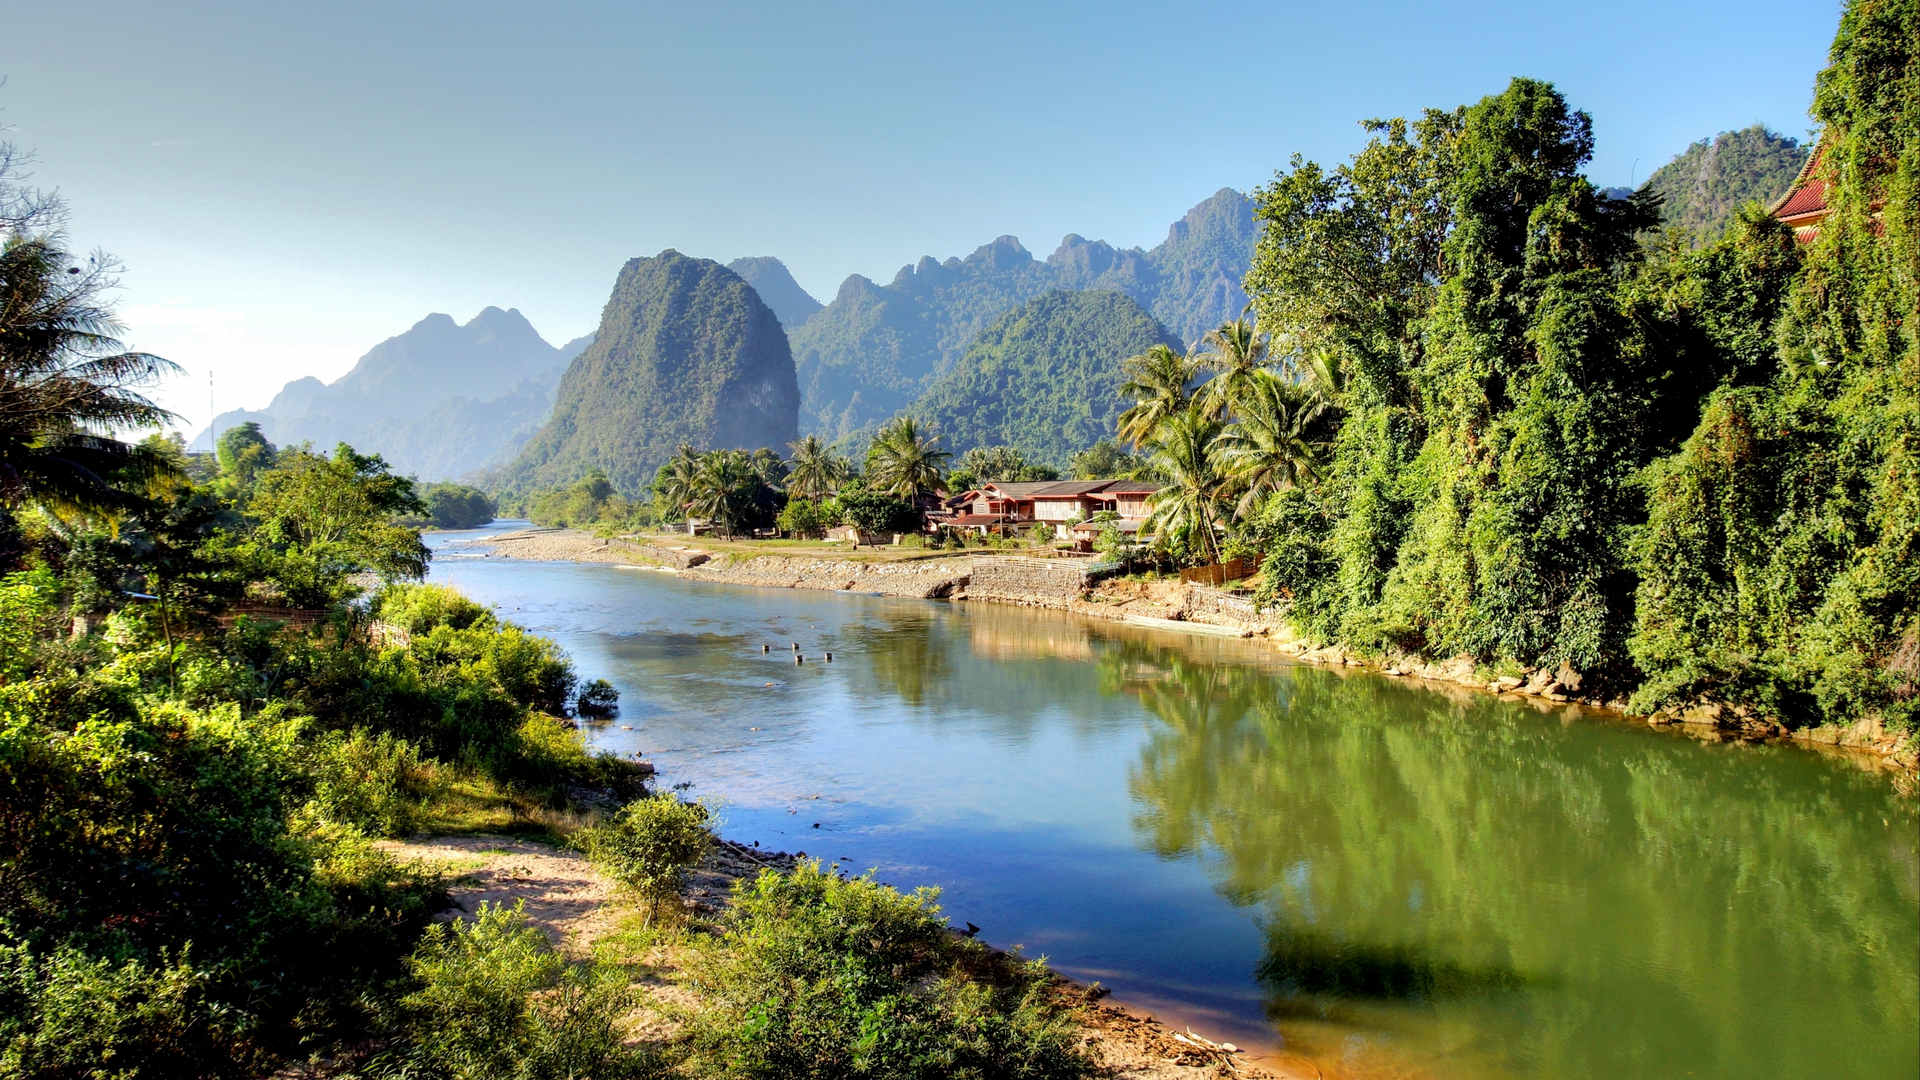 Indochina_Laos Song river at Vang Vieng